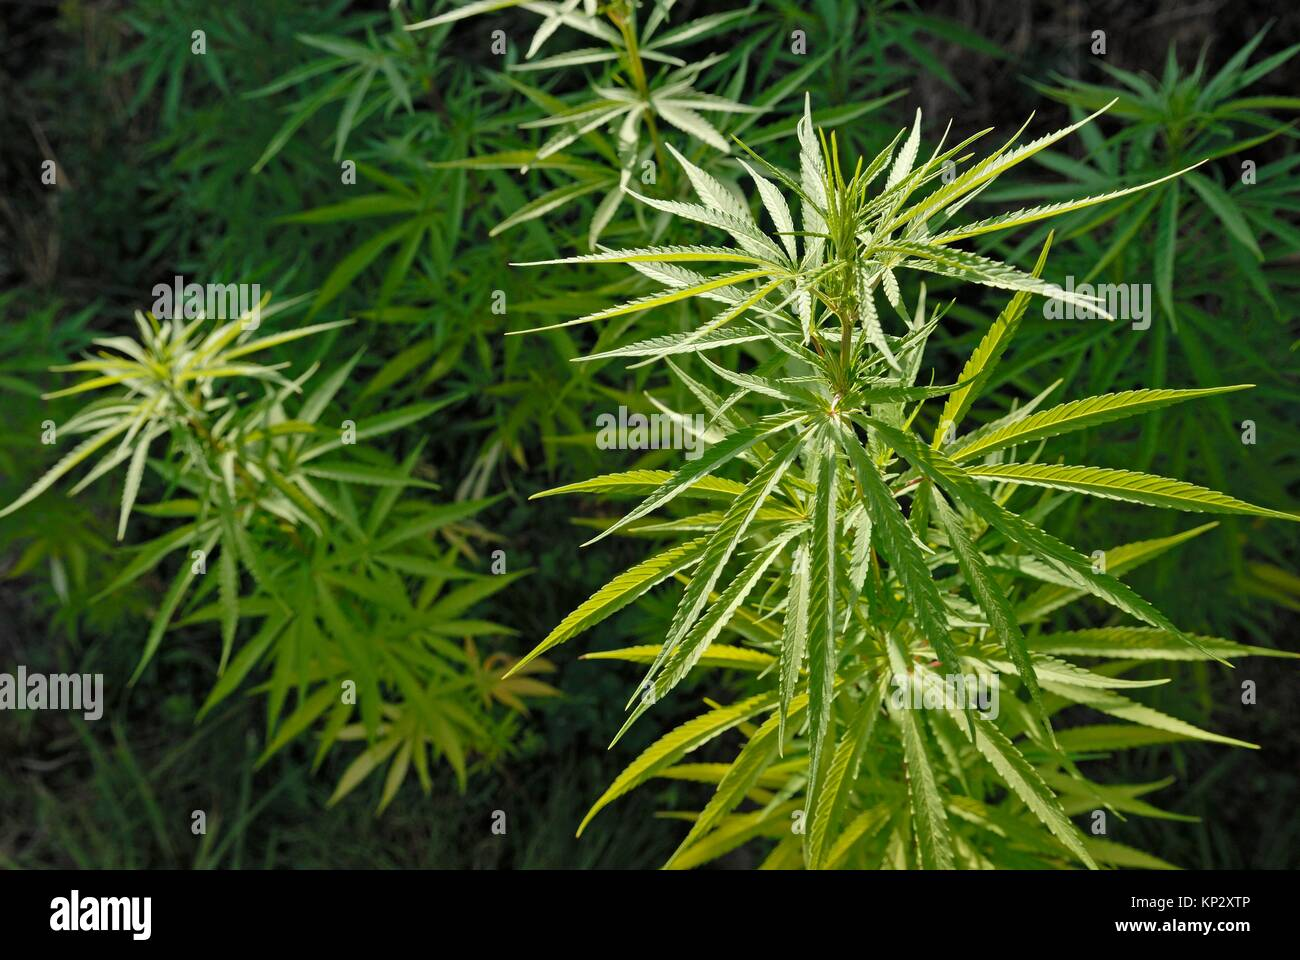 Cannabis sativa plants. - Stock Image